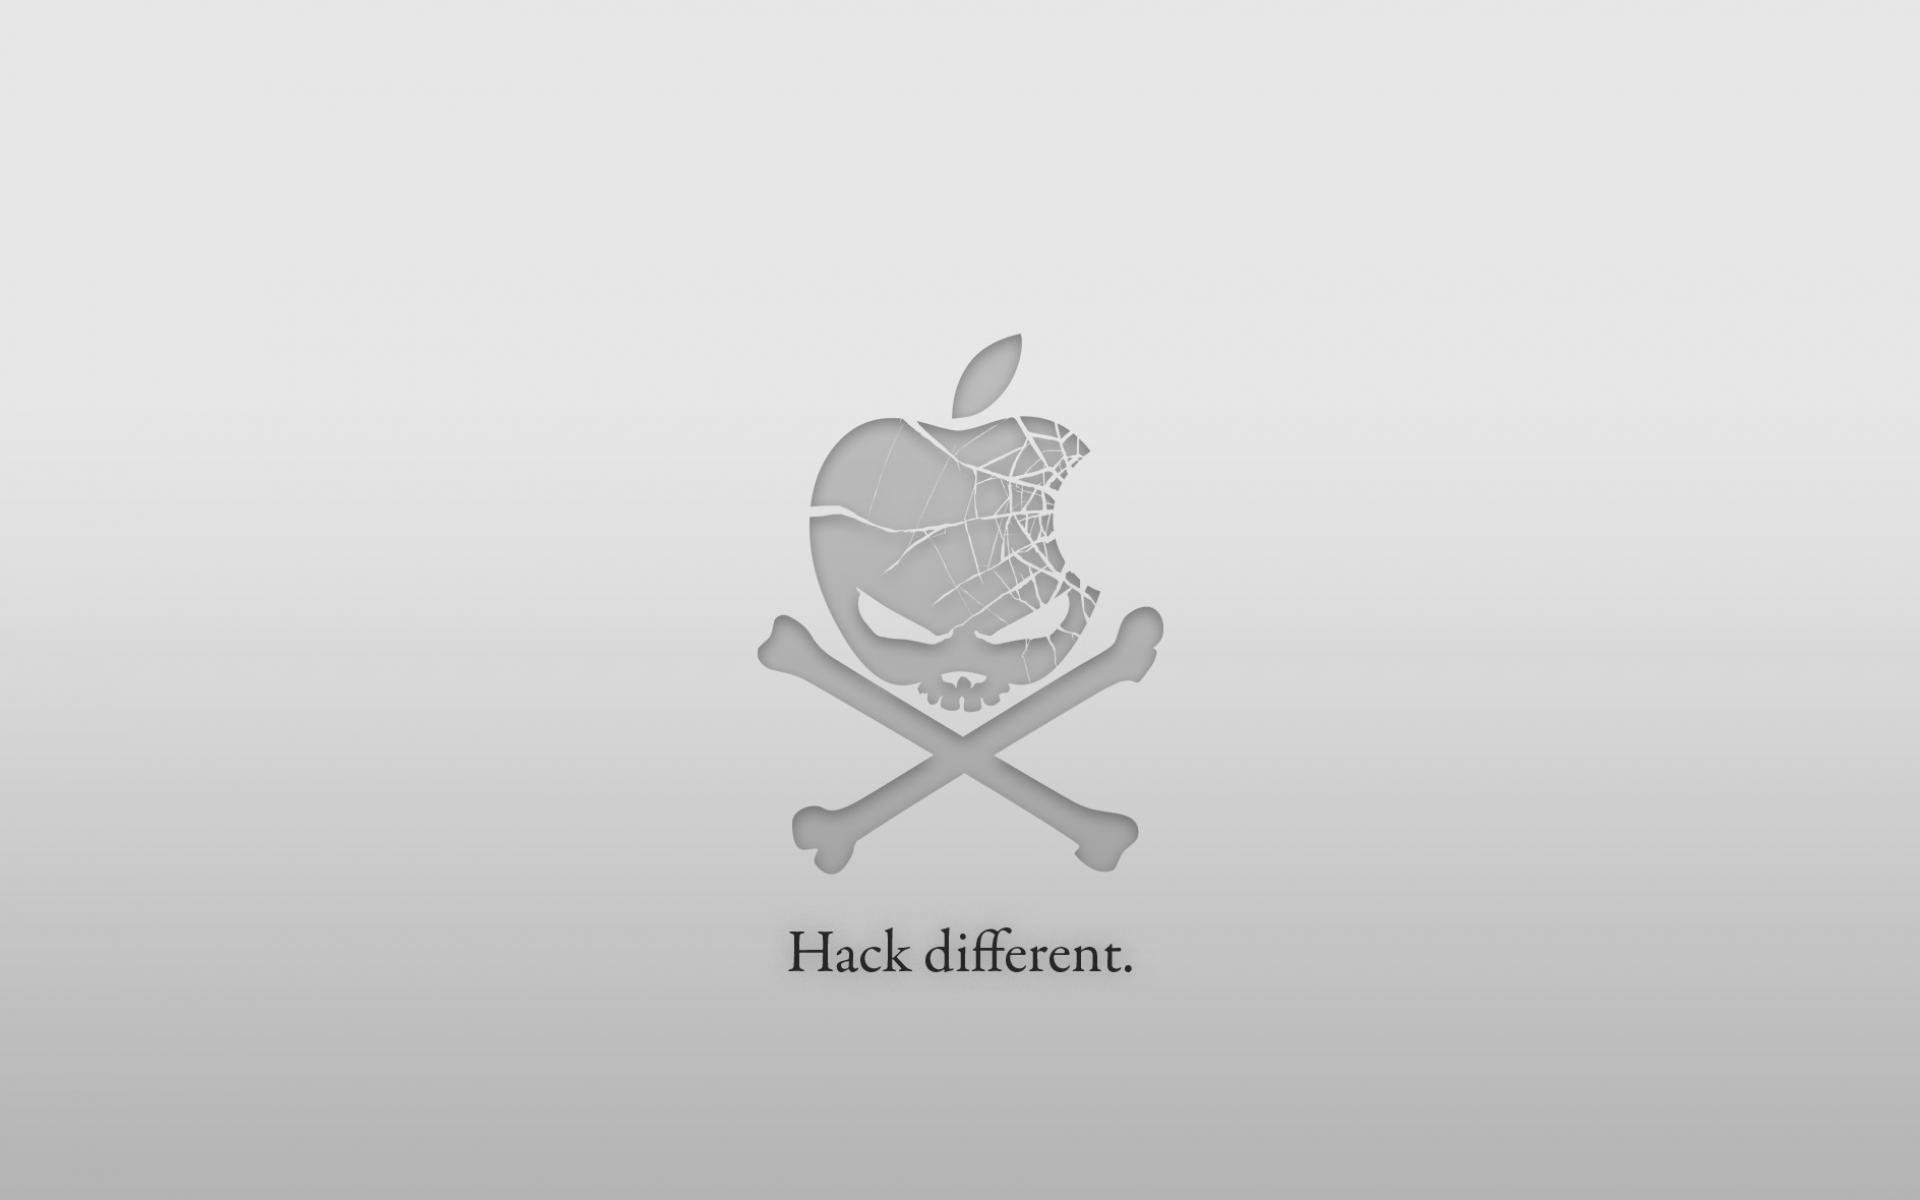 Обои Hack different 1920x1200